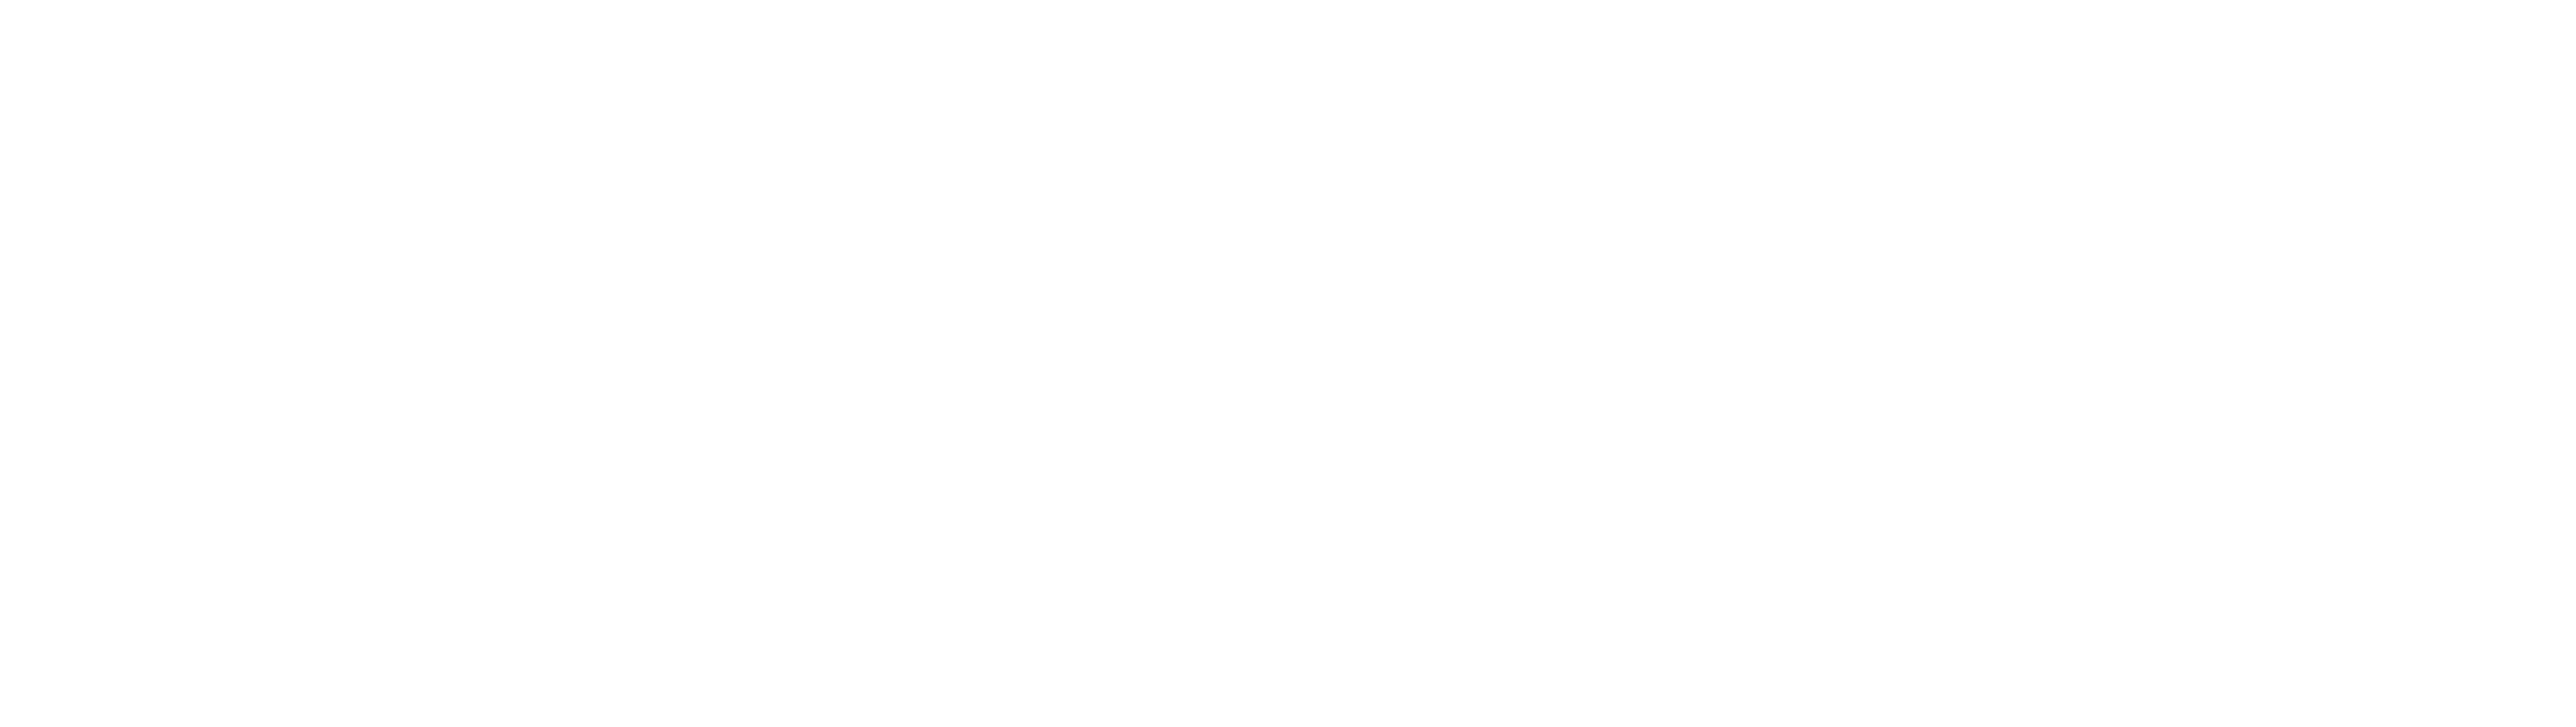 Forget Me Not Flowers and More - Flower Delivery in London, ON